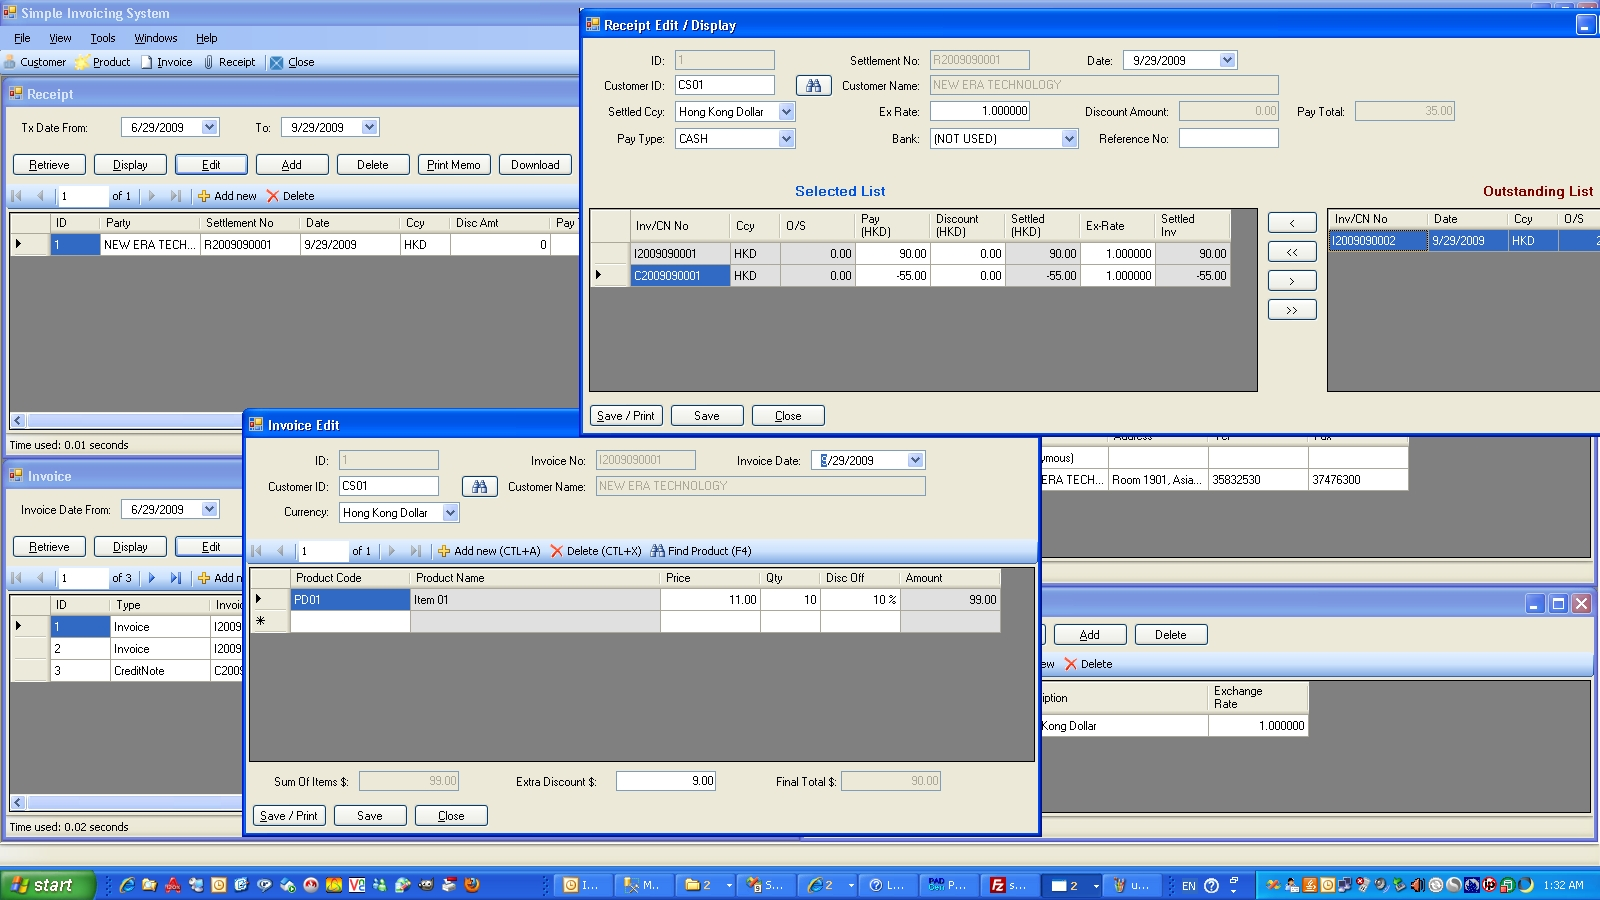 download free simple invoice simple invoice 1209 download simple invoice program